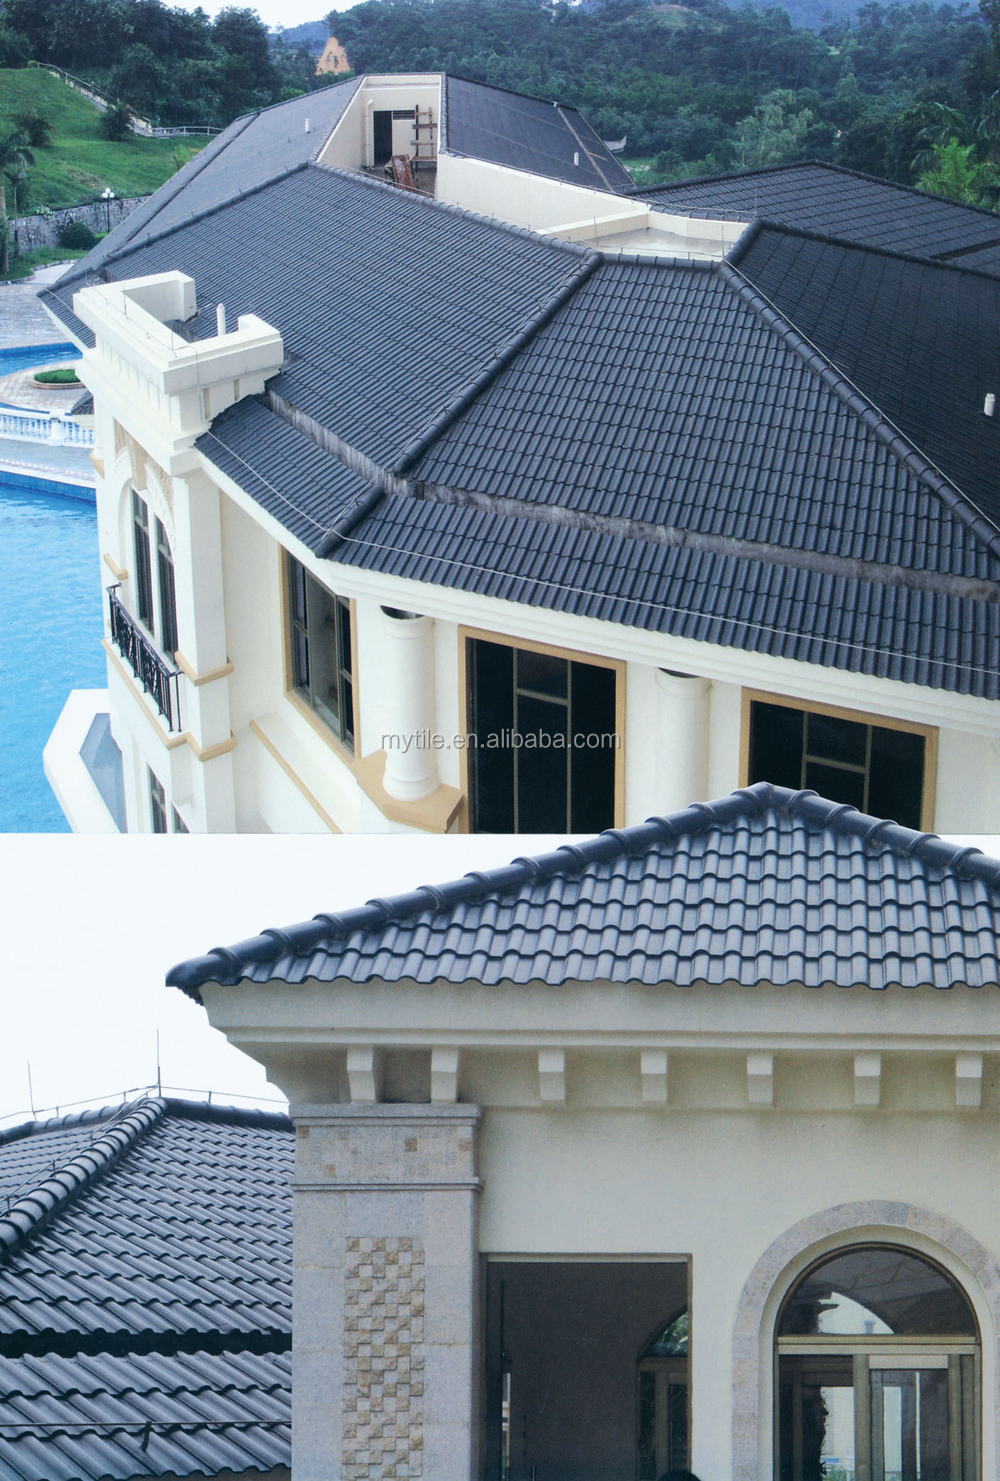 France ceramic roof tiles manufacturers view roof tiles france ceramic roof tiles manufacturers dailygadgetfo Images